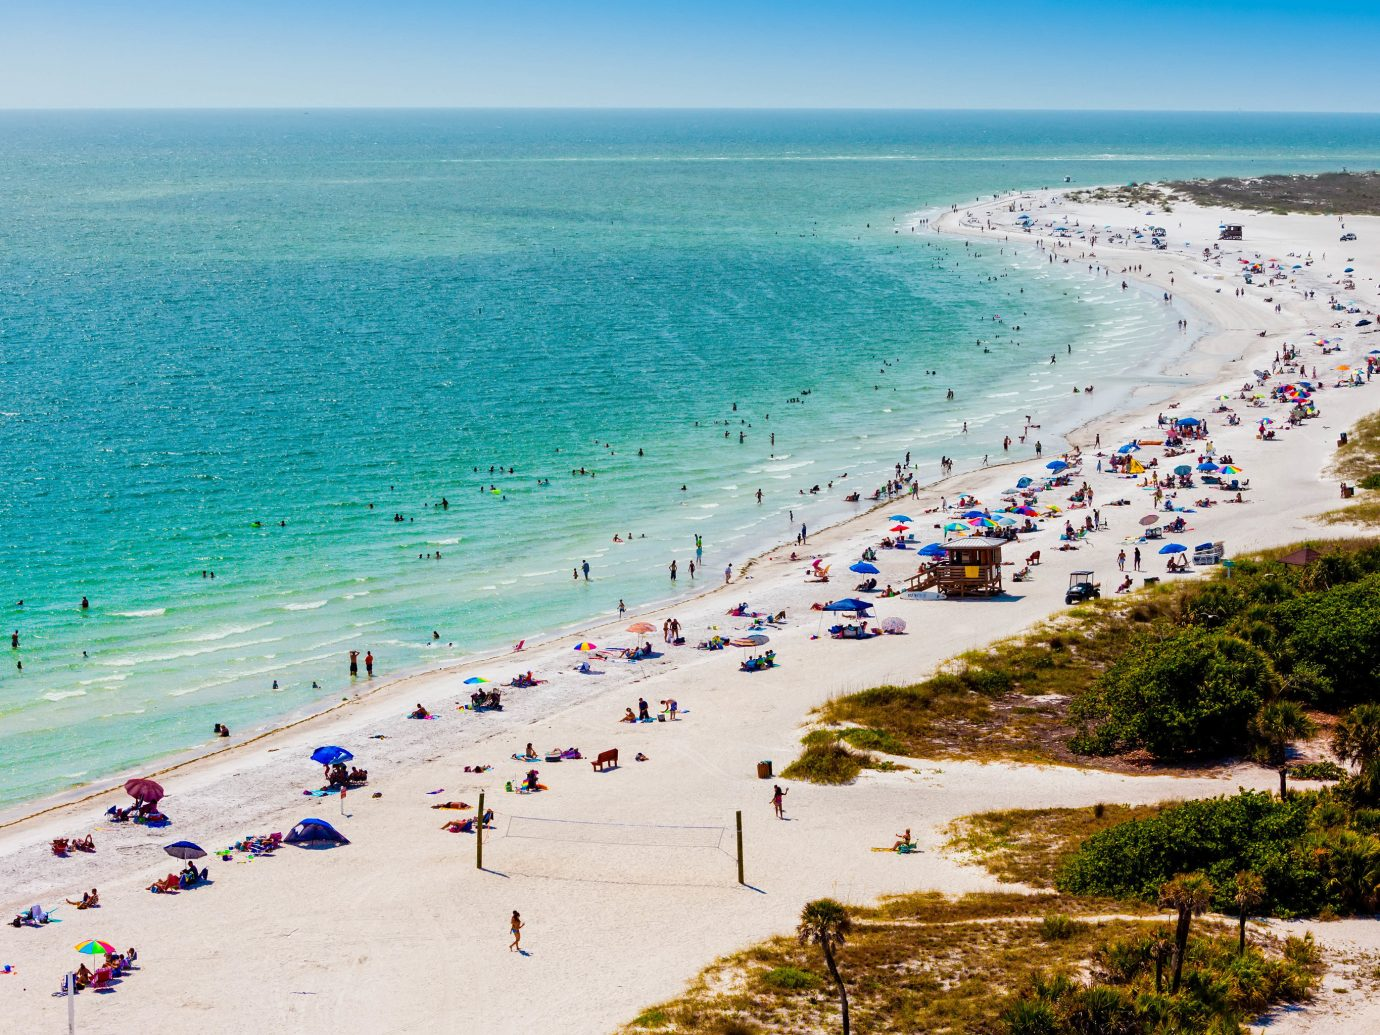 Hotels Trip Ideas water outdoor sky Beach Nature Ocean shore body of water Sea Coast vacation sand people bay wind wave cape wave sandy cove line